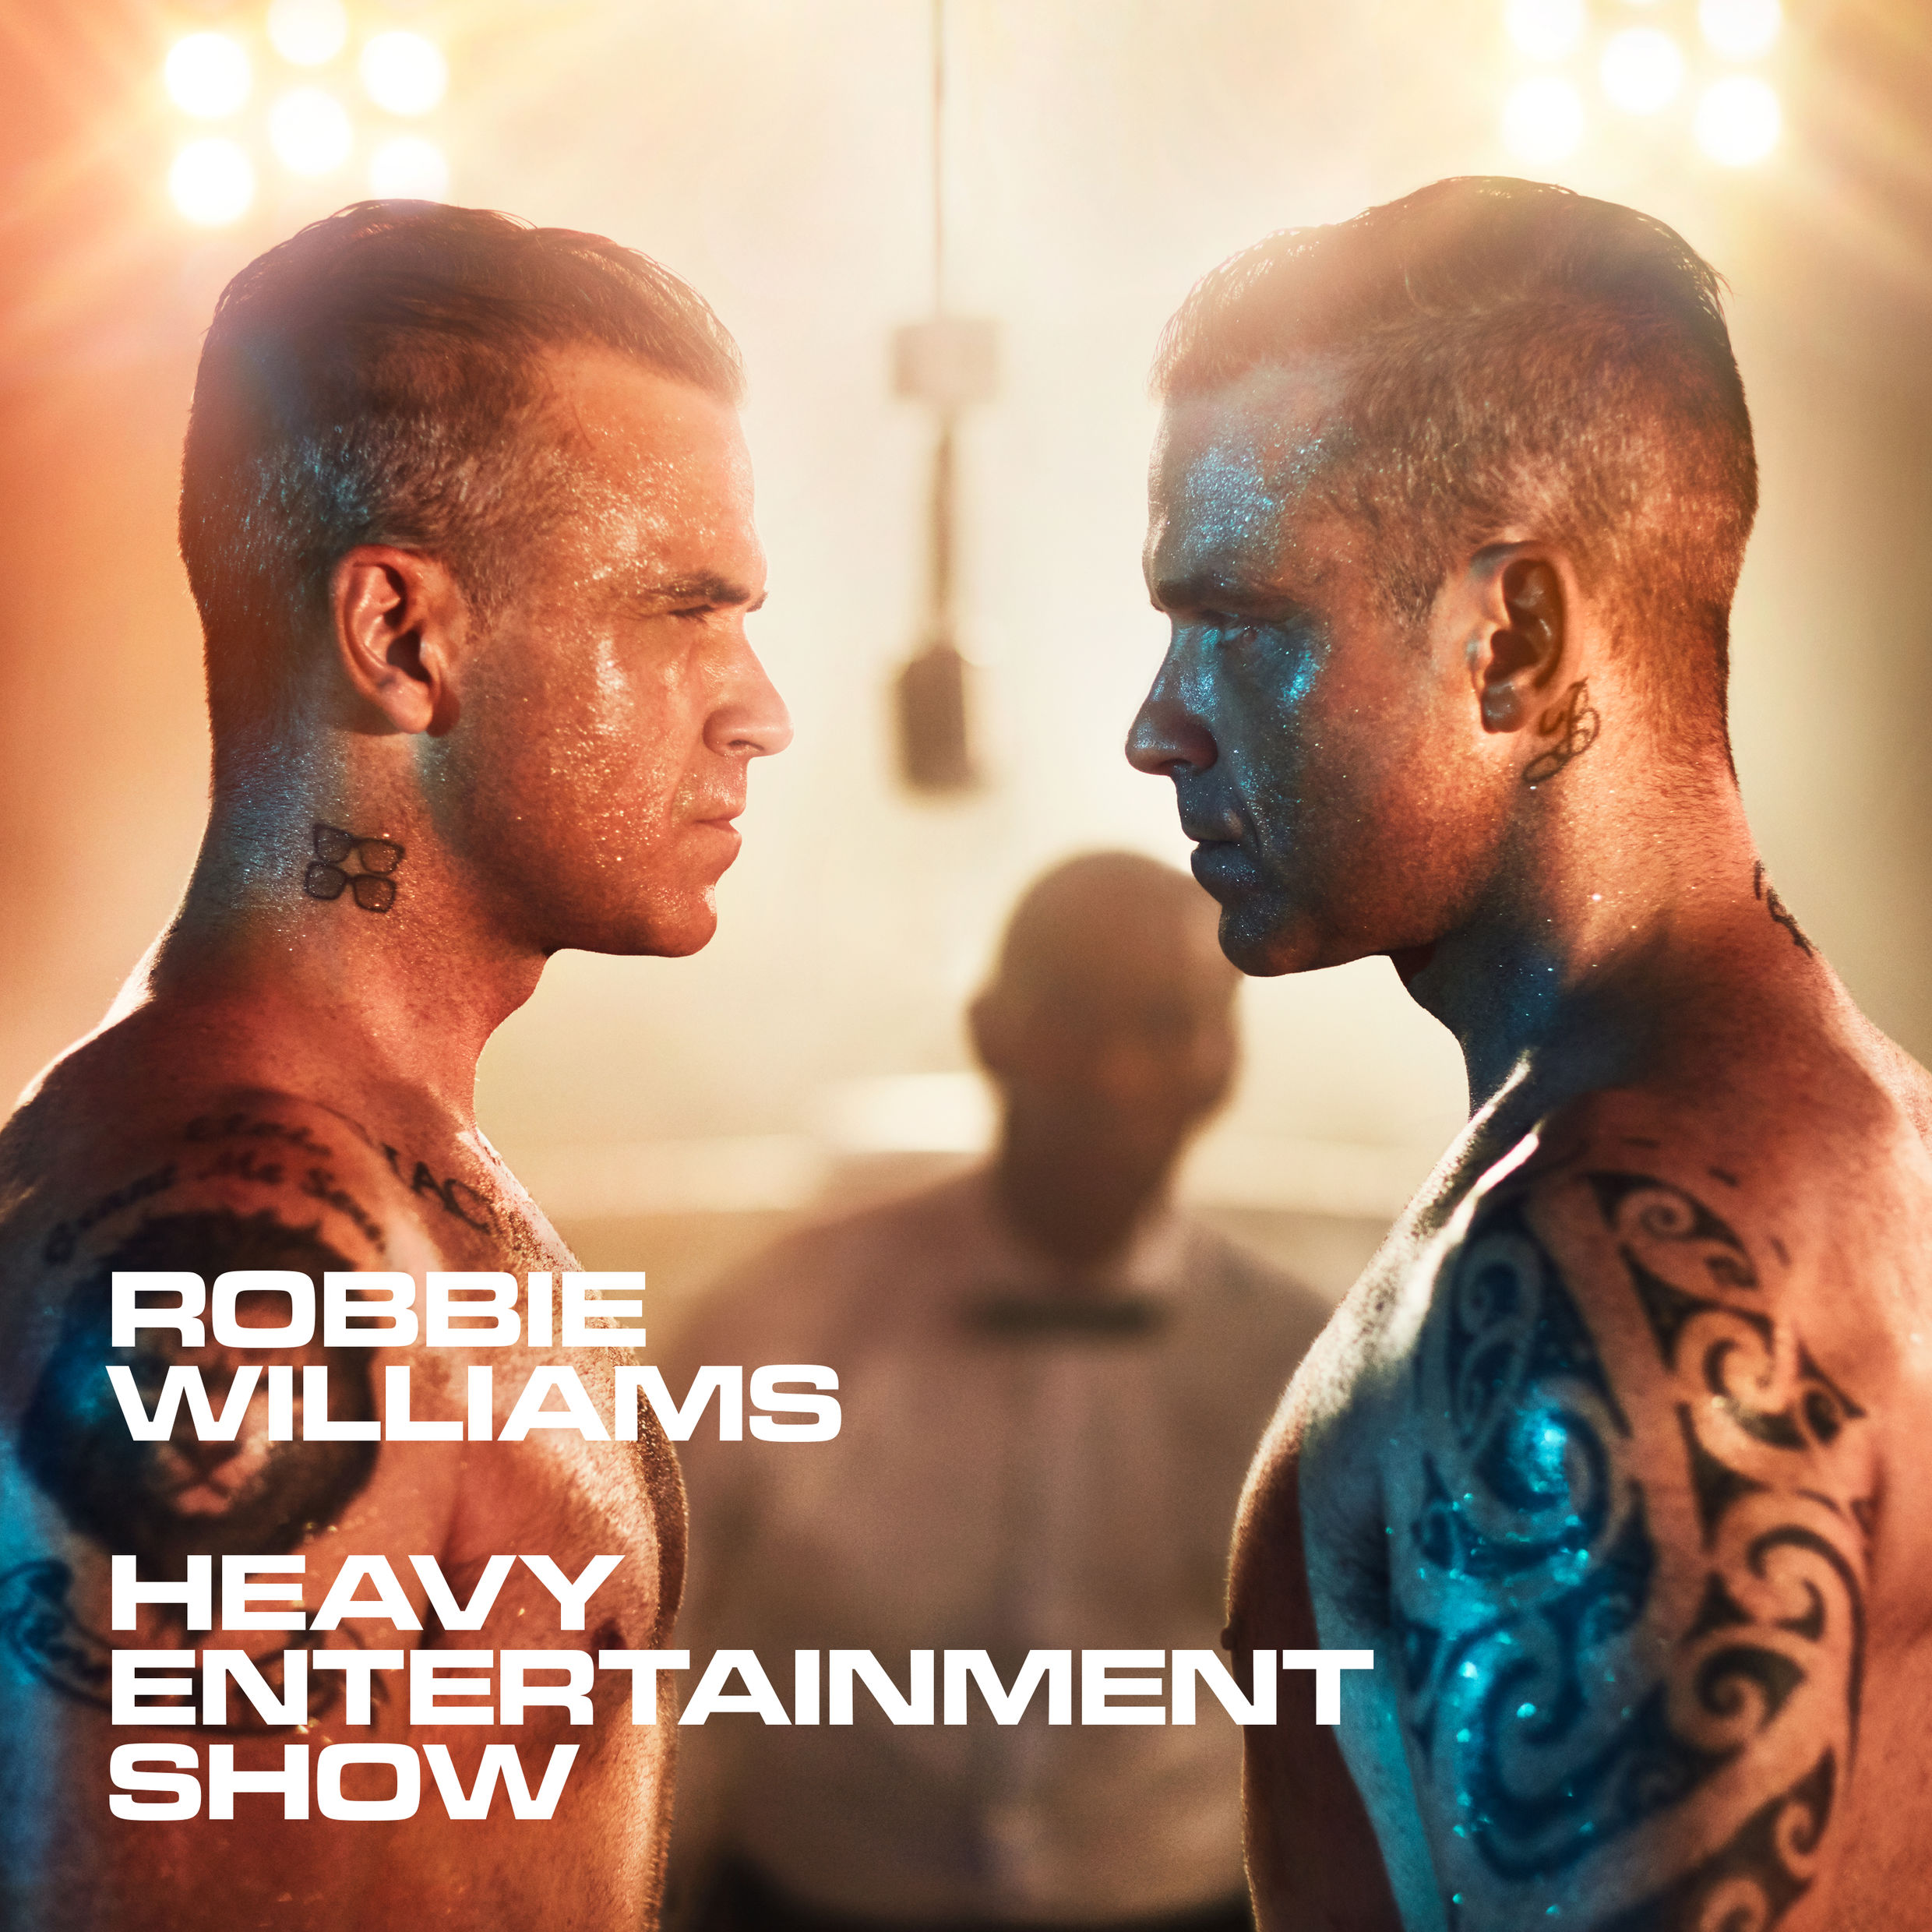 robbie-williams-heavy-entertainment-show-2016-2480x2480.jpg